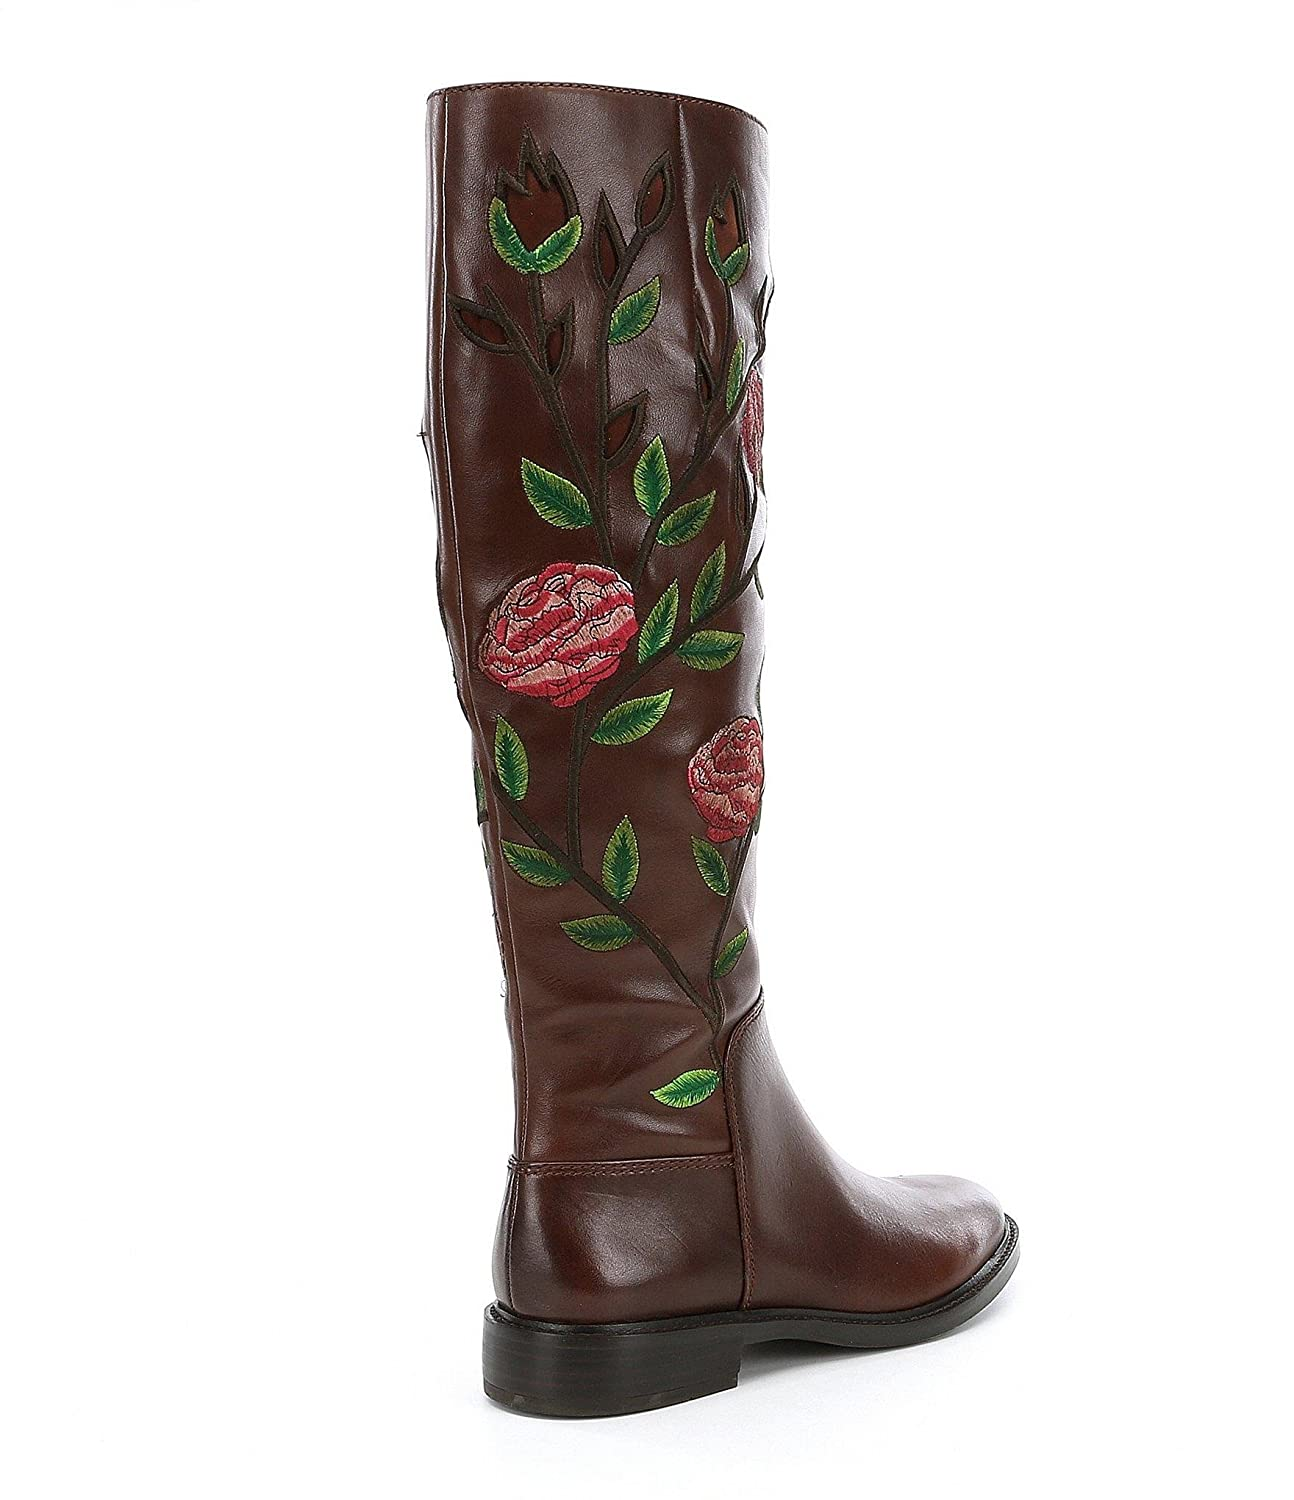 95117269995a4 Amazon.com | Gianni Bini Women's Myala Floral Embroidery Leather Wide Shaft  Boot, Size 8M Dark Crimson | Knee-High